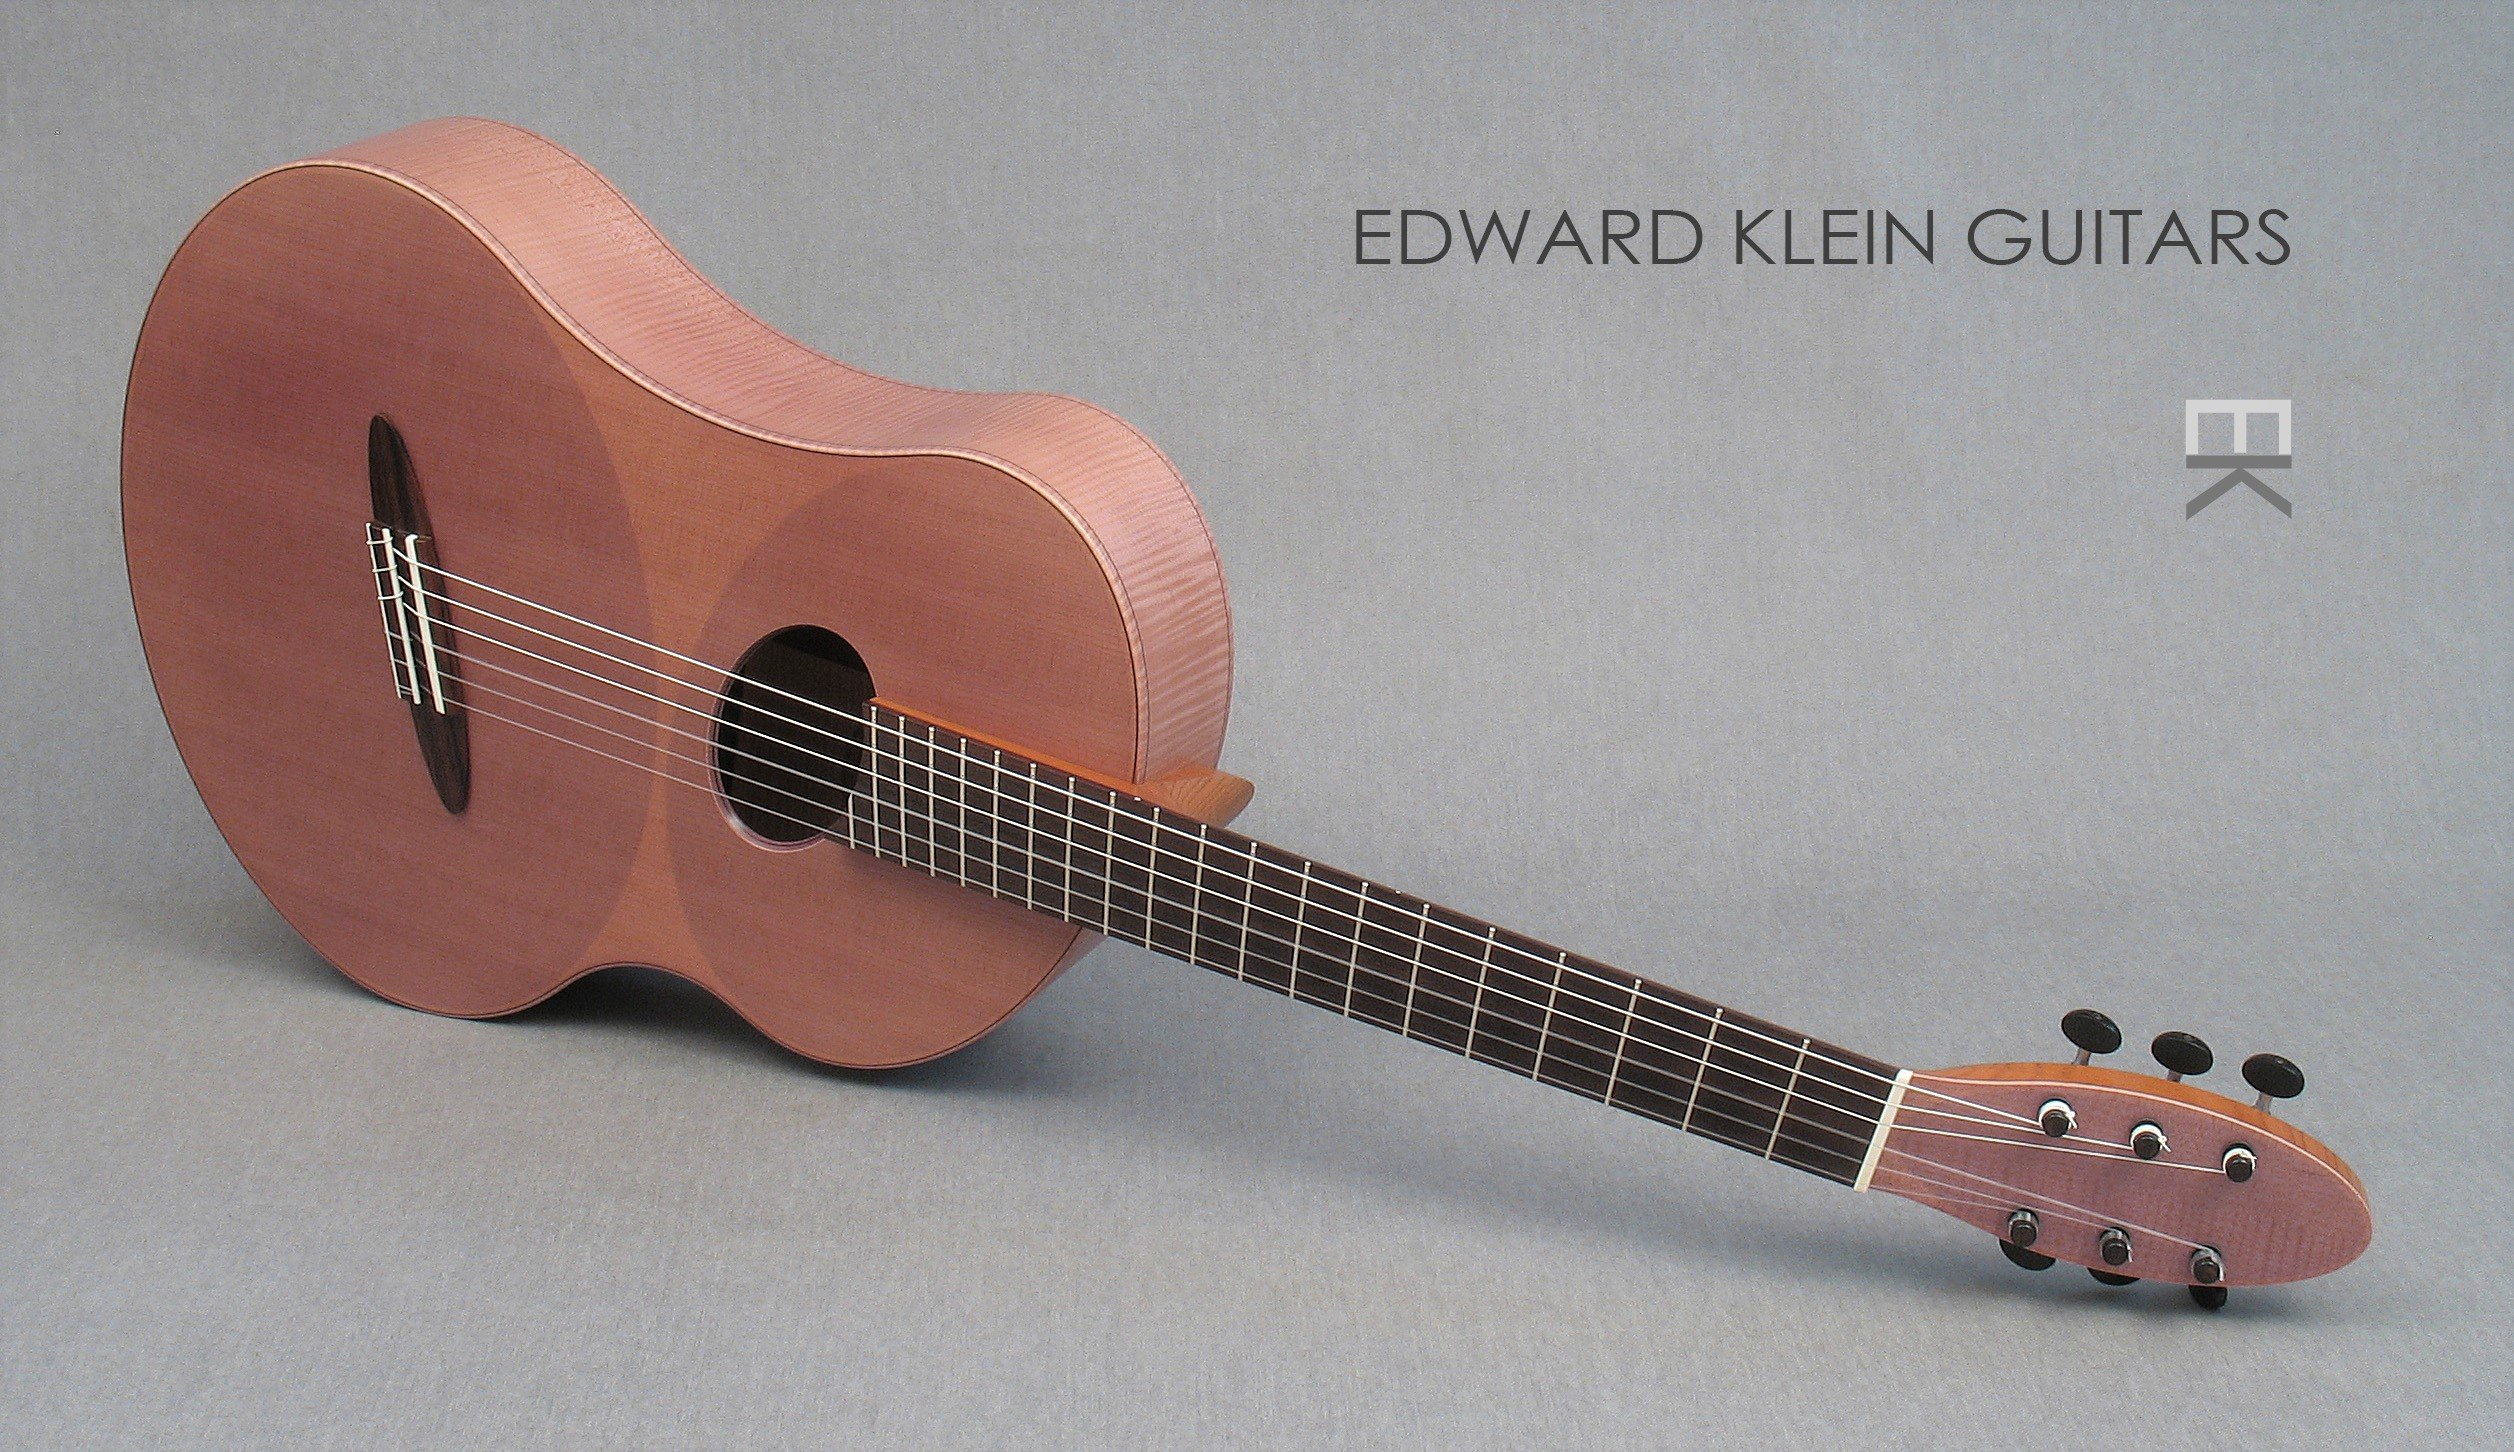 Ellipse N (nylon string) Curly maple, spruce, EI rosewood, ebony, Spanish cedar, lacquer finish